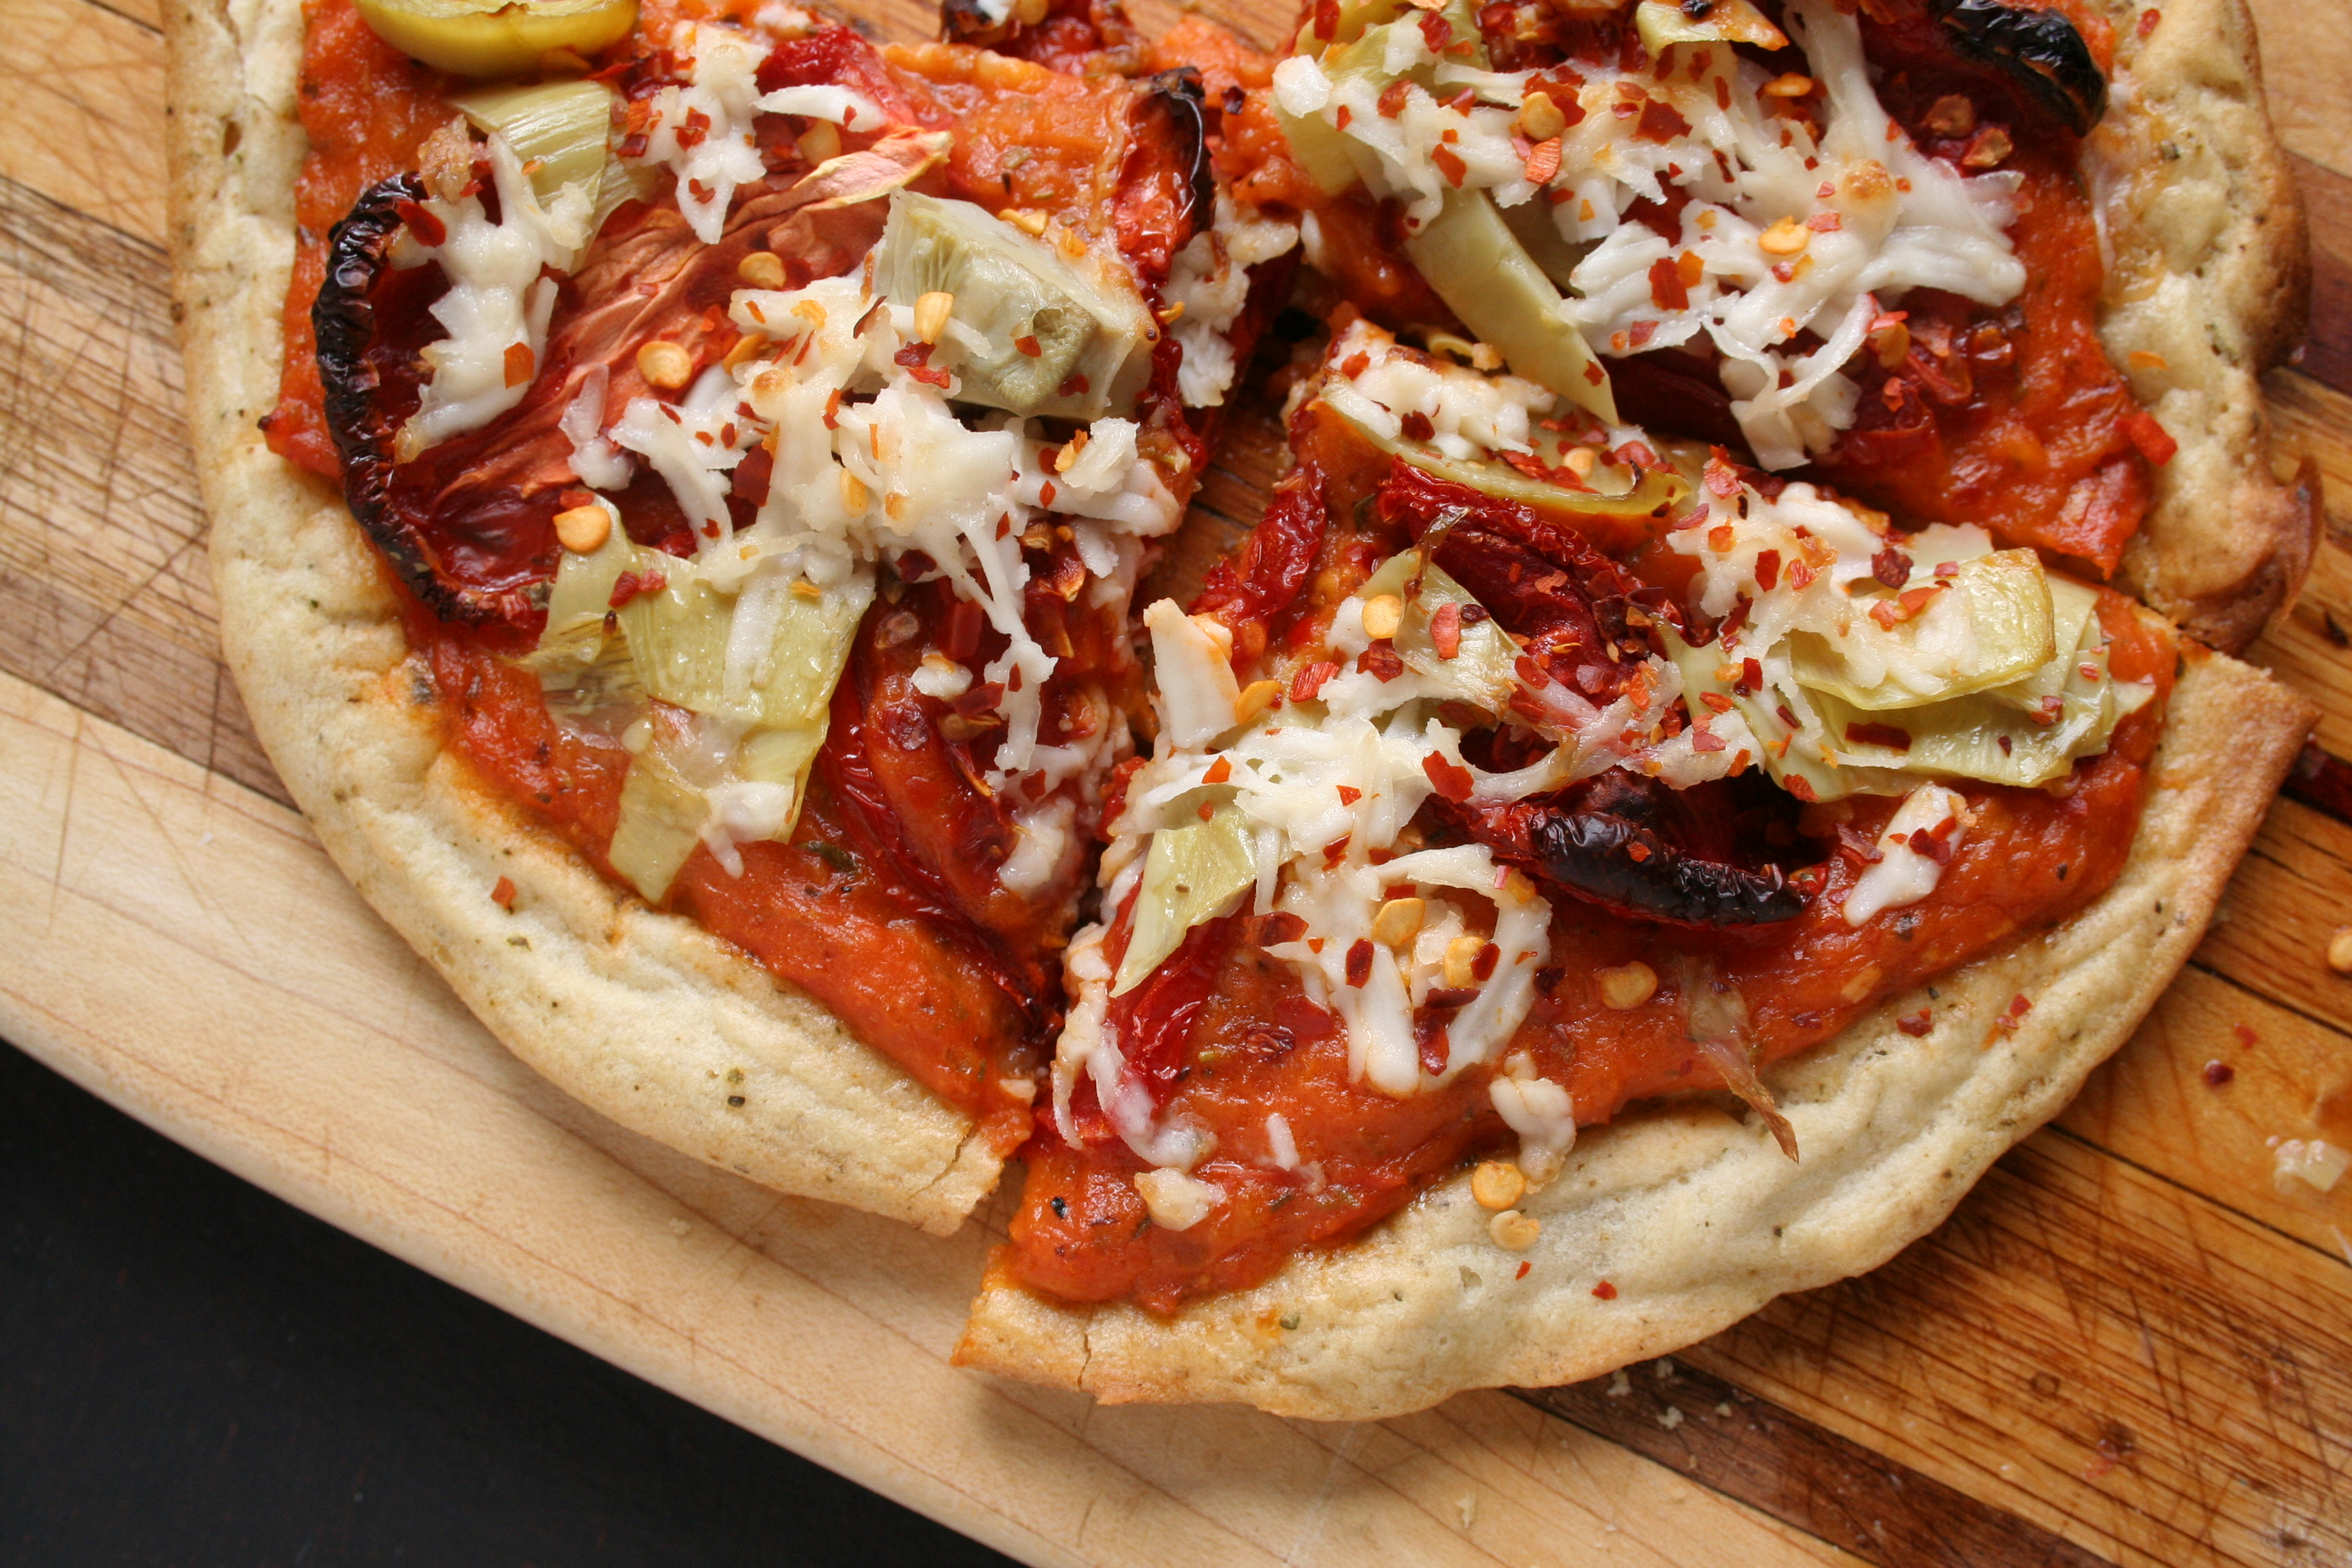 Pizza with Roasted Tomato Sauce, Sun-Dried Tomatoes and Artichokes